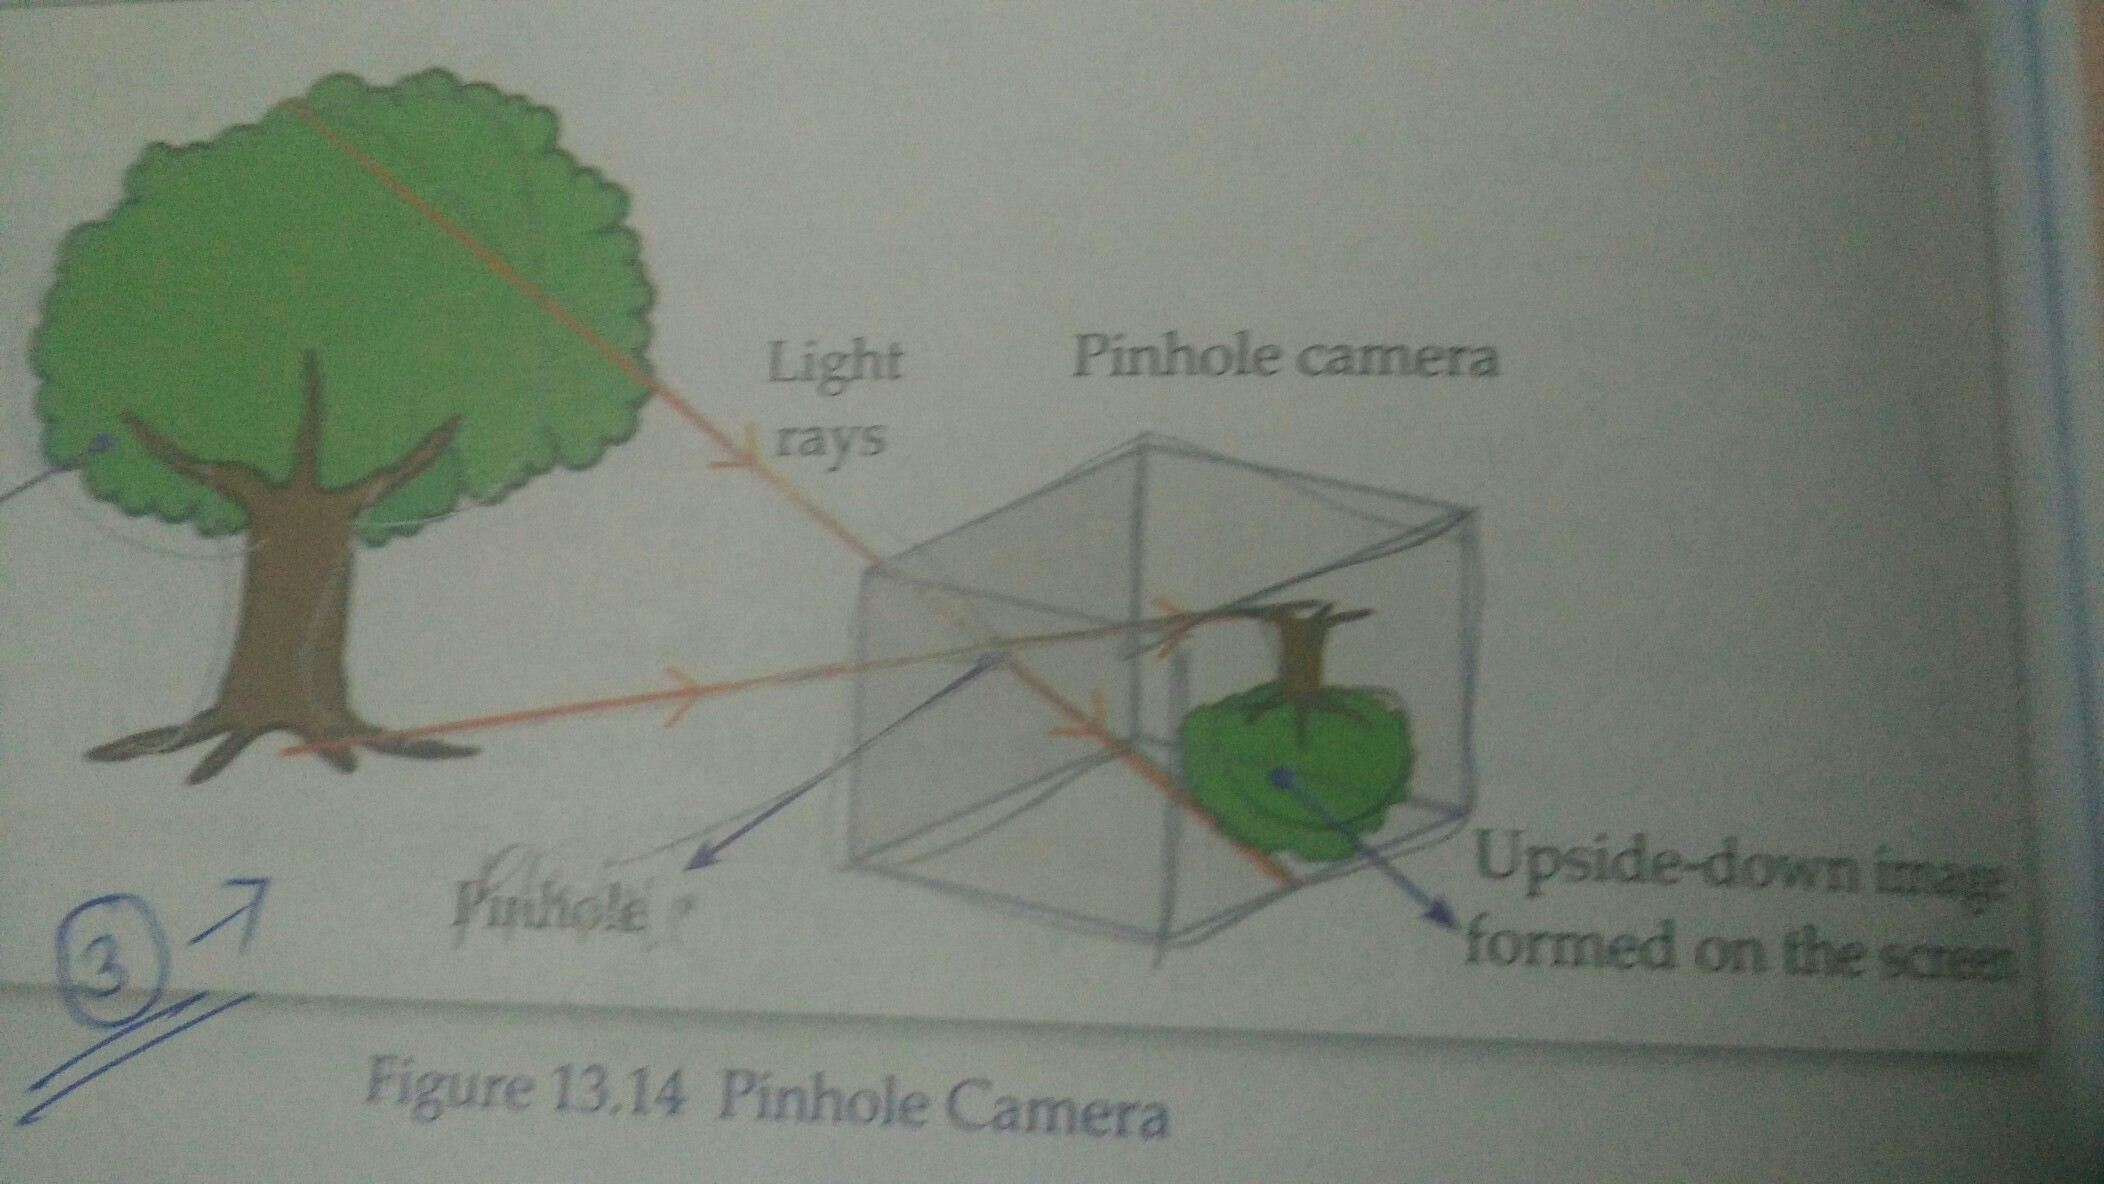 Give An Example Of Image Formedby Pinhole Camera Diagram Download